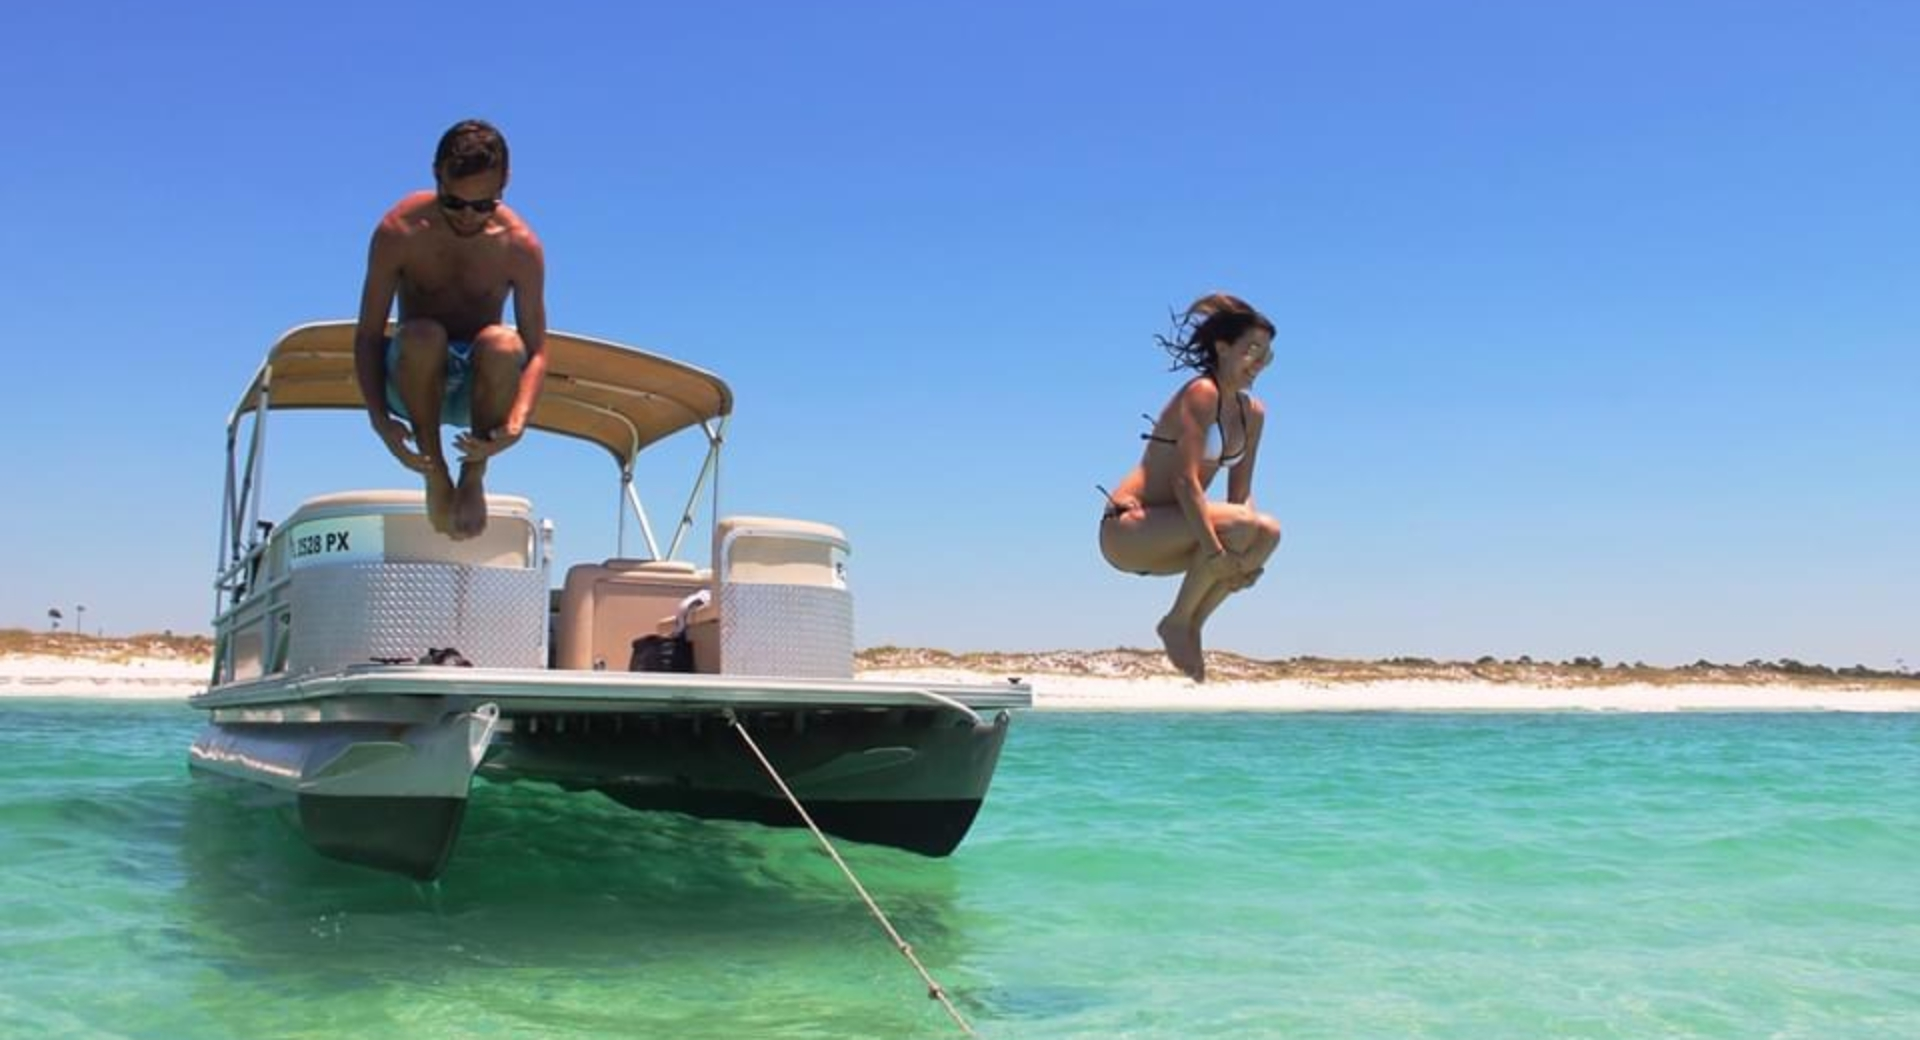 Pontoon Boat Rental Services Panama City Beach Florida